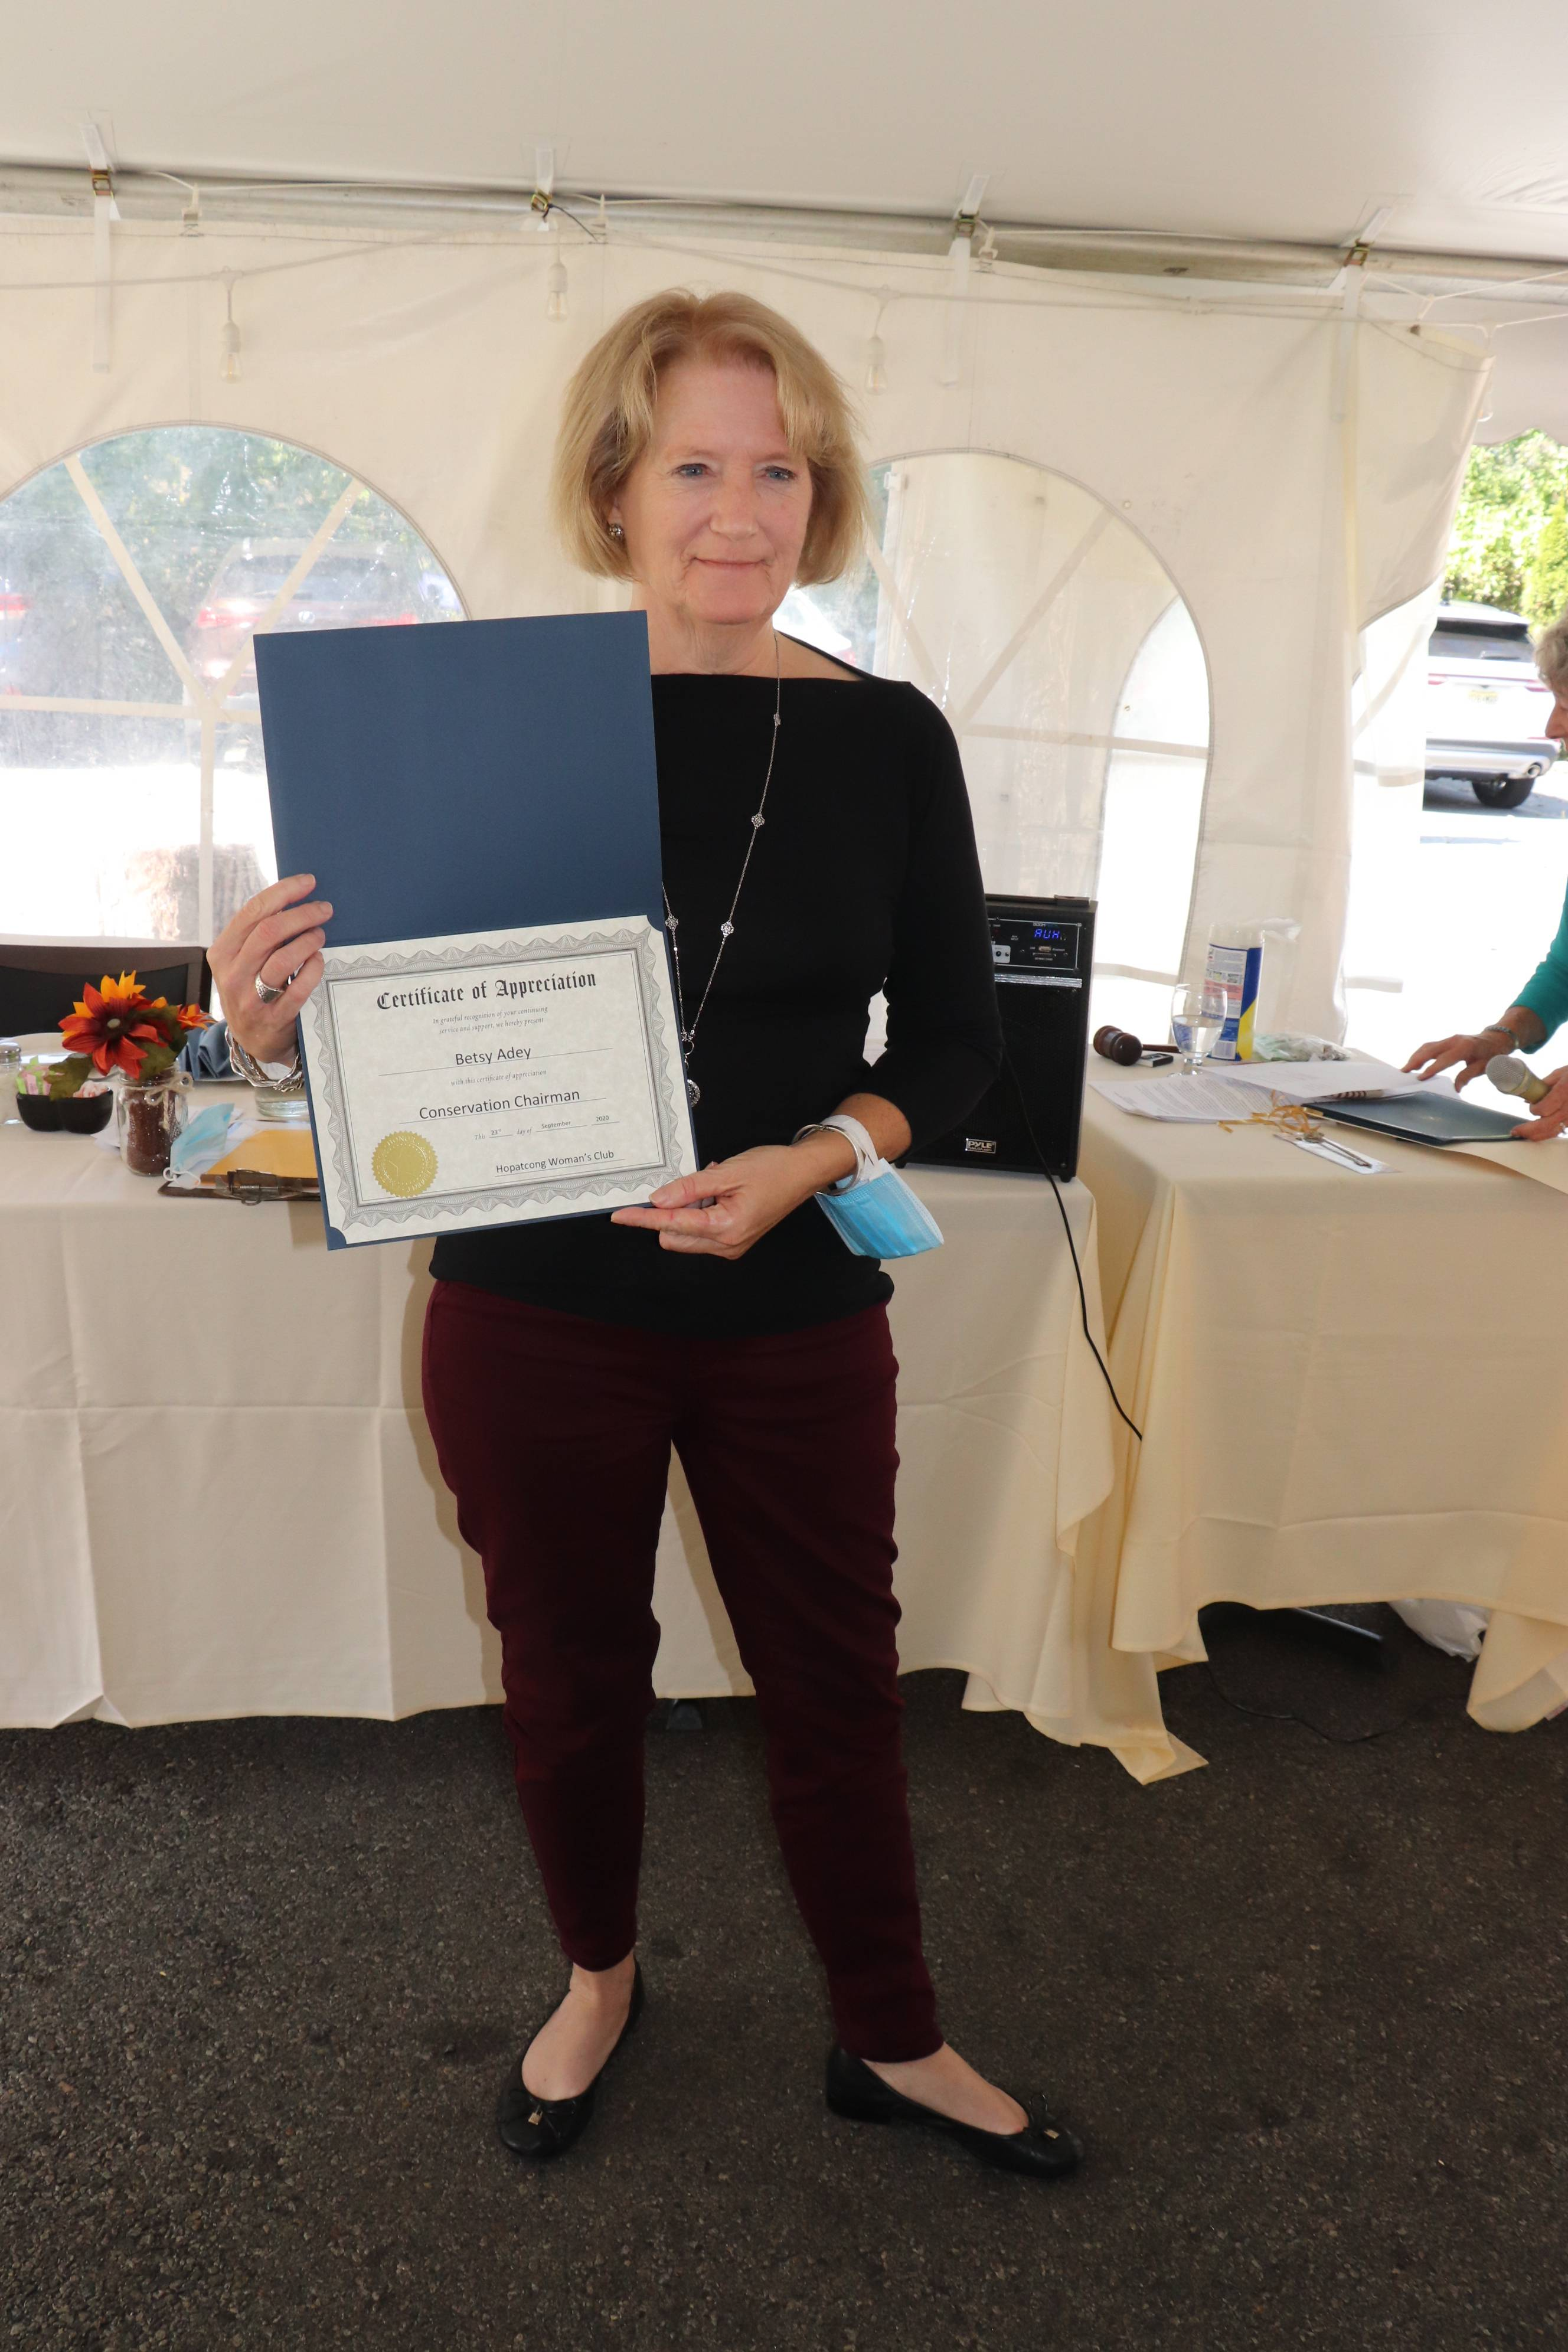 Betsy Adey, Conservation Chairman